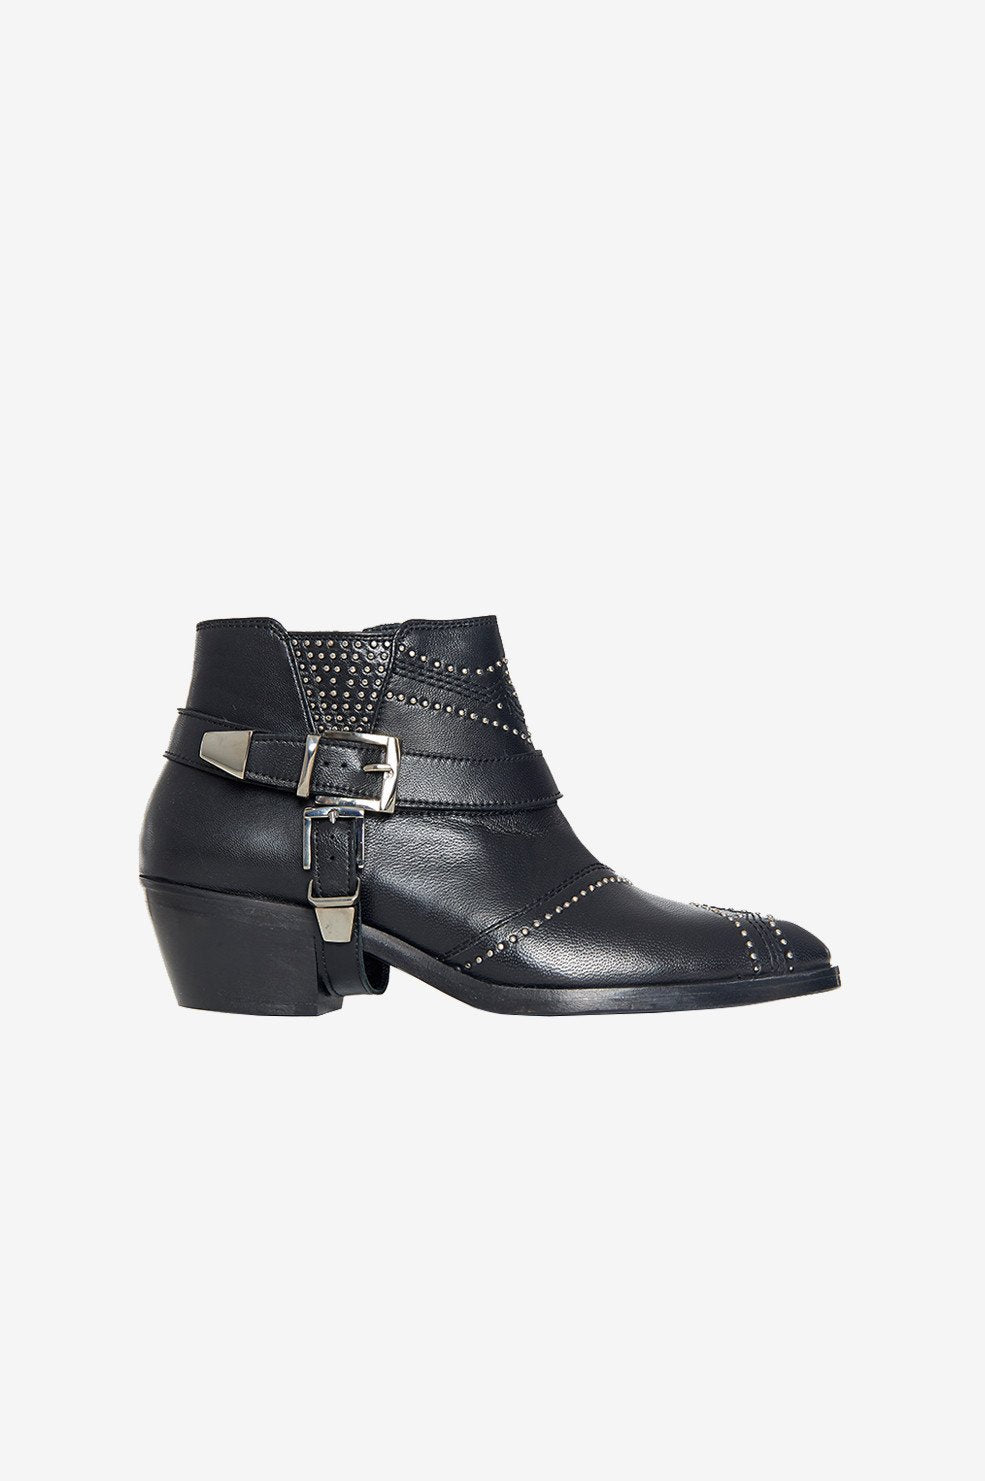 Anine Bing | Bianca Boots - Black & Silver